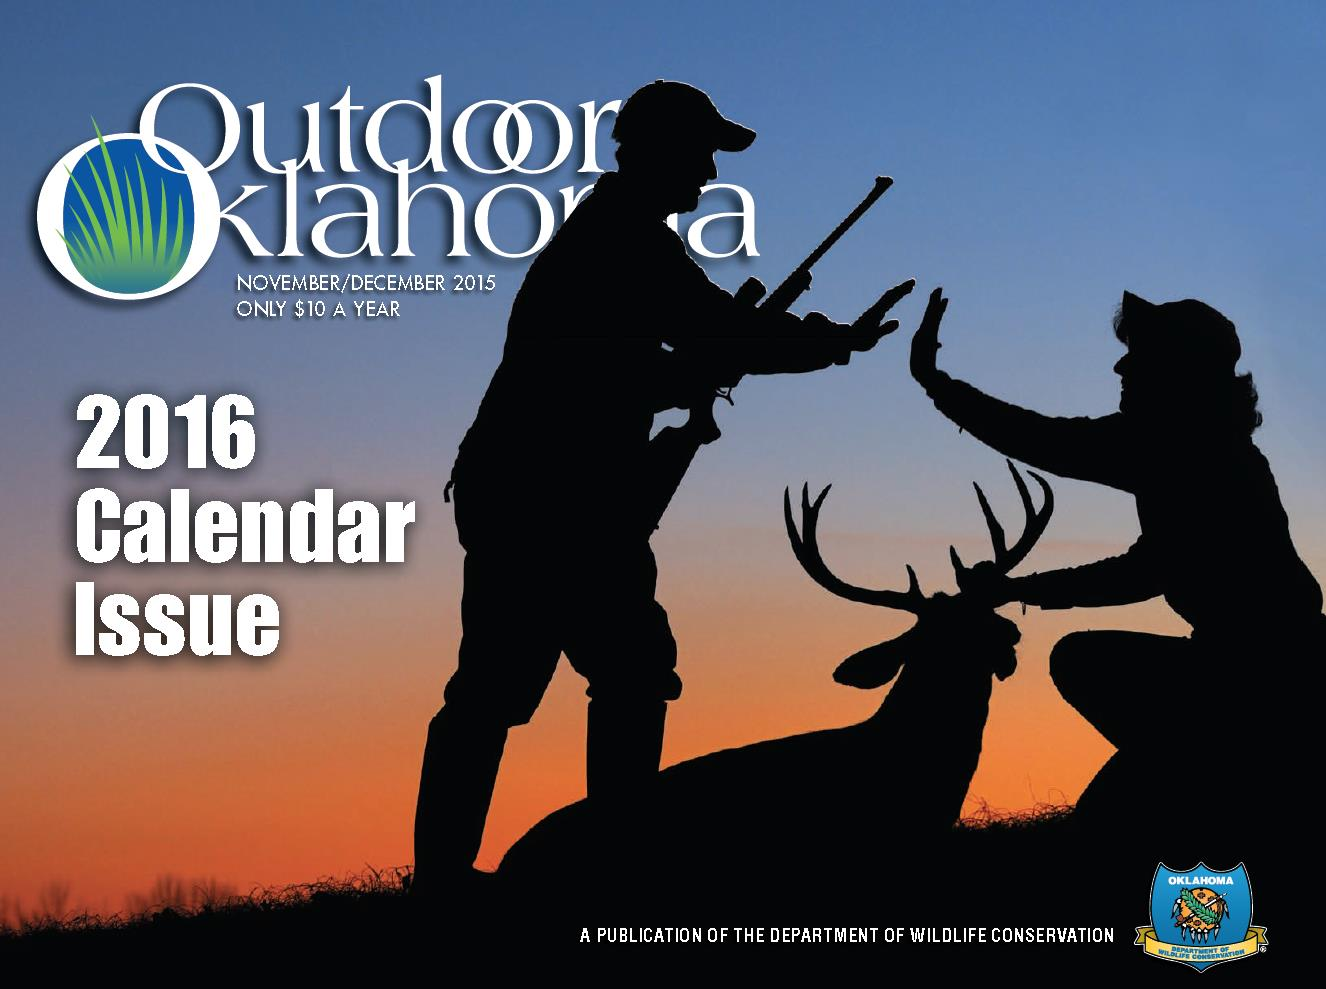 Purchase your subscription to get the 2015 calendar issue